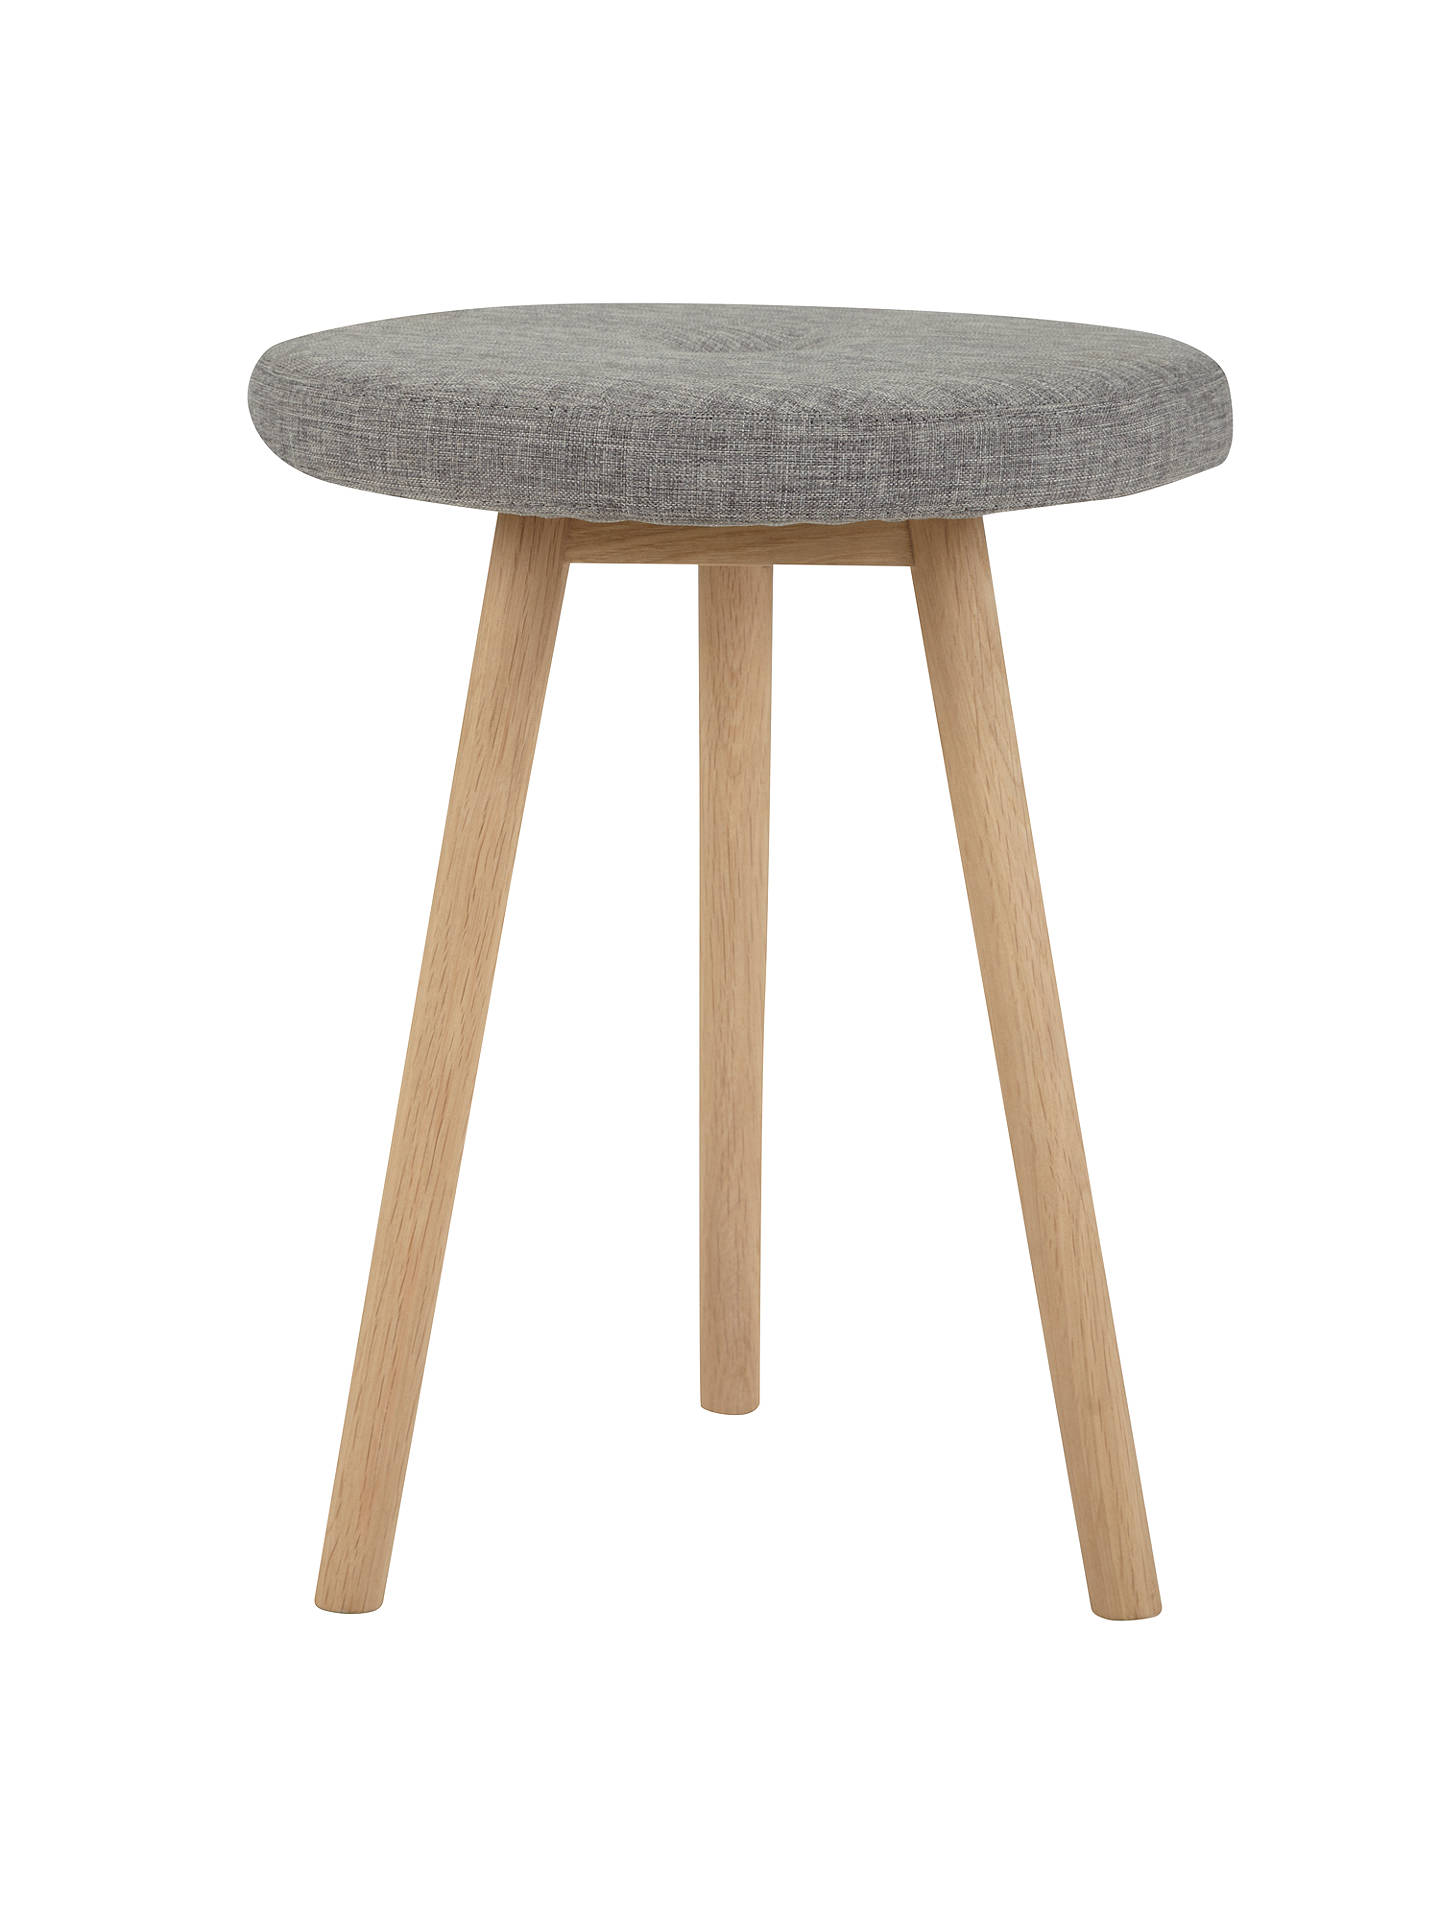 Buy Bethan Gray for John Lewis Genevieve Stool Online at johnlewis.com